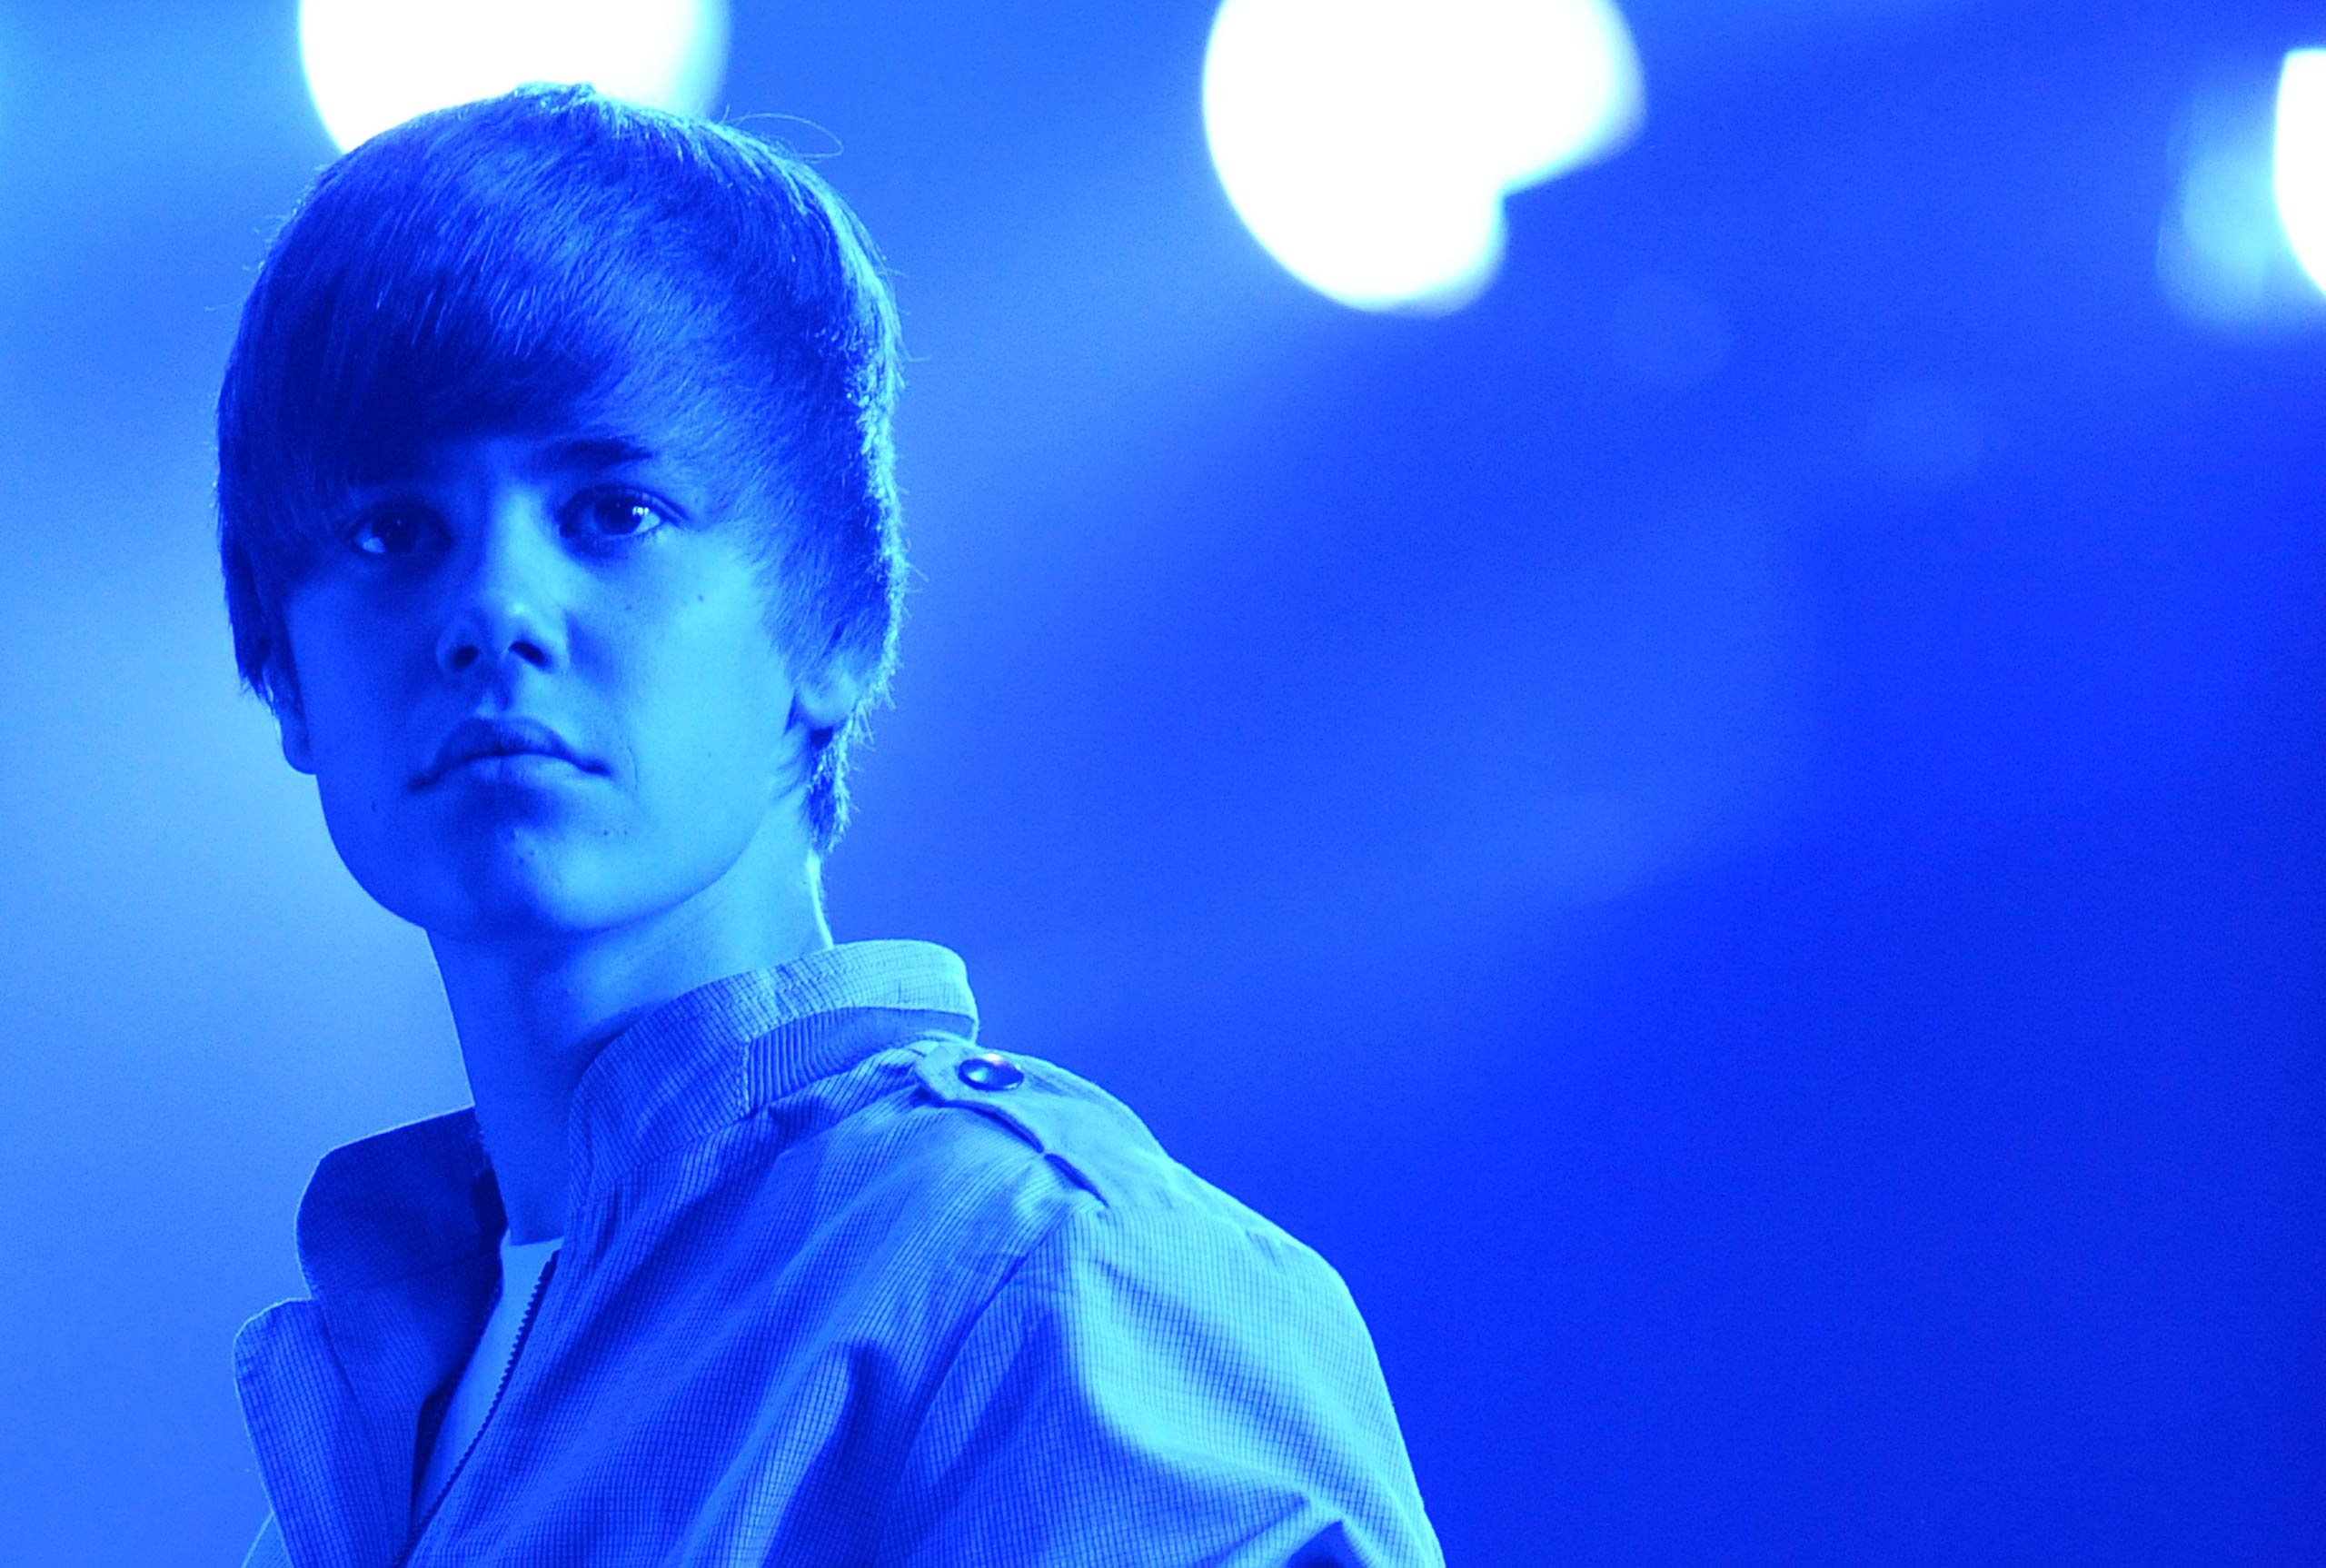 Justin Bieber performs at 102.7 KIIS-FM's Wango Tango 2010 show, held at the Staples Center in Los Angeles, Calif. in 2010.